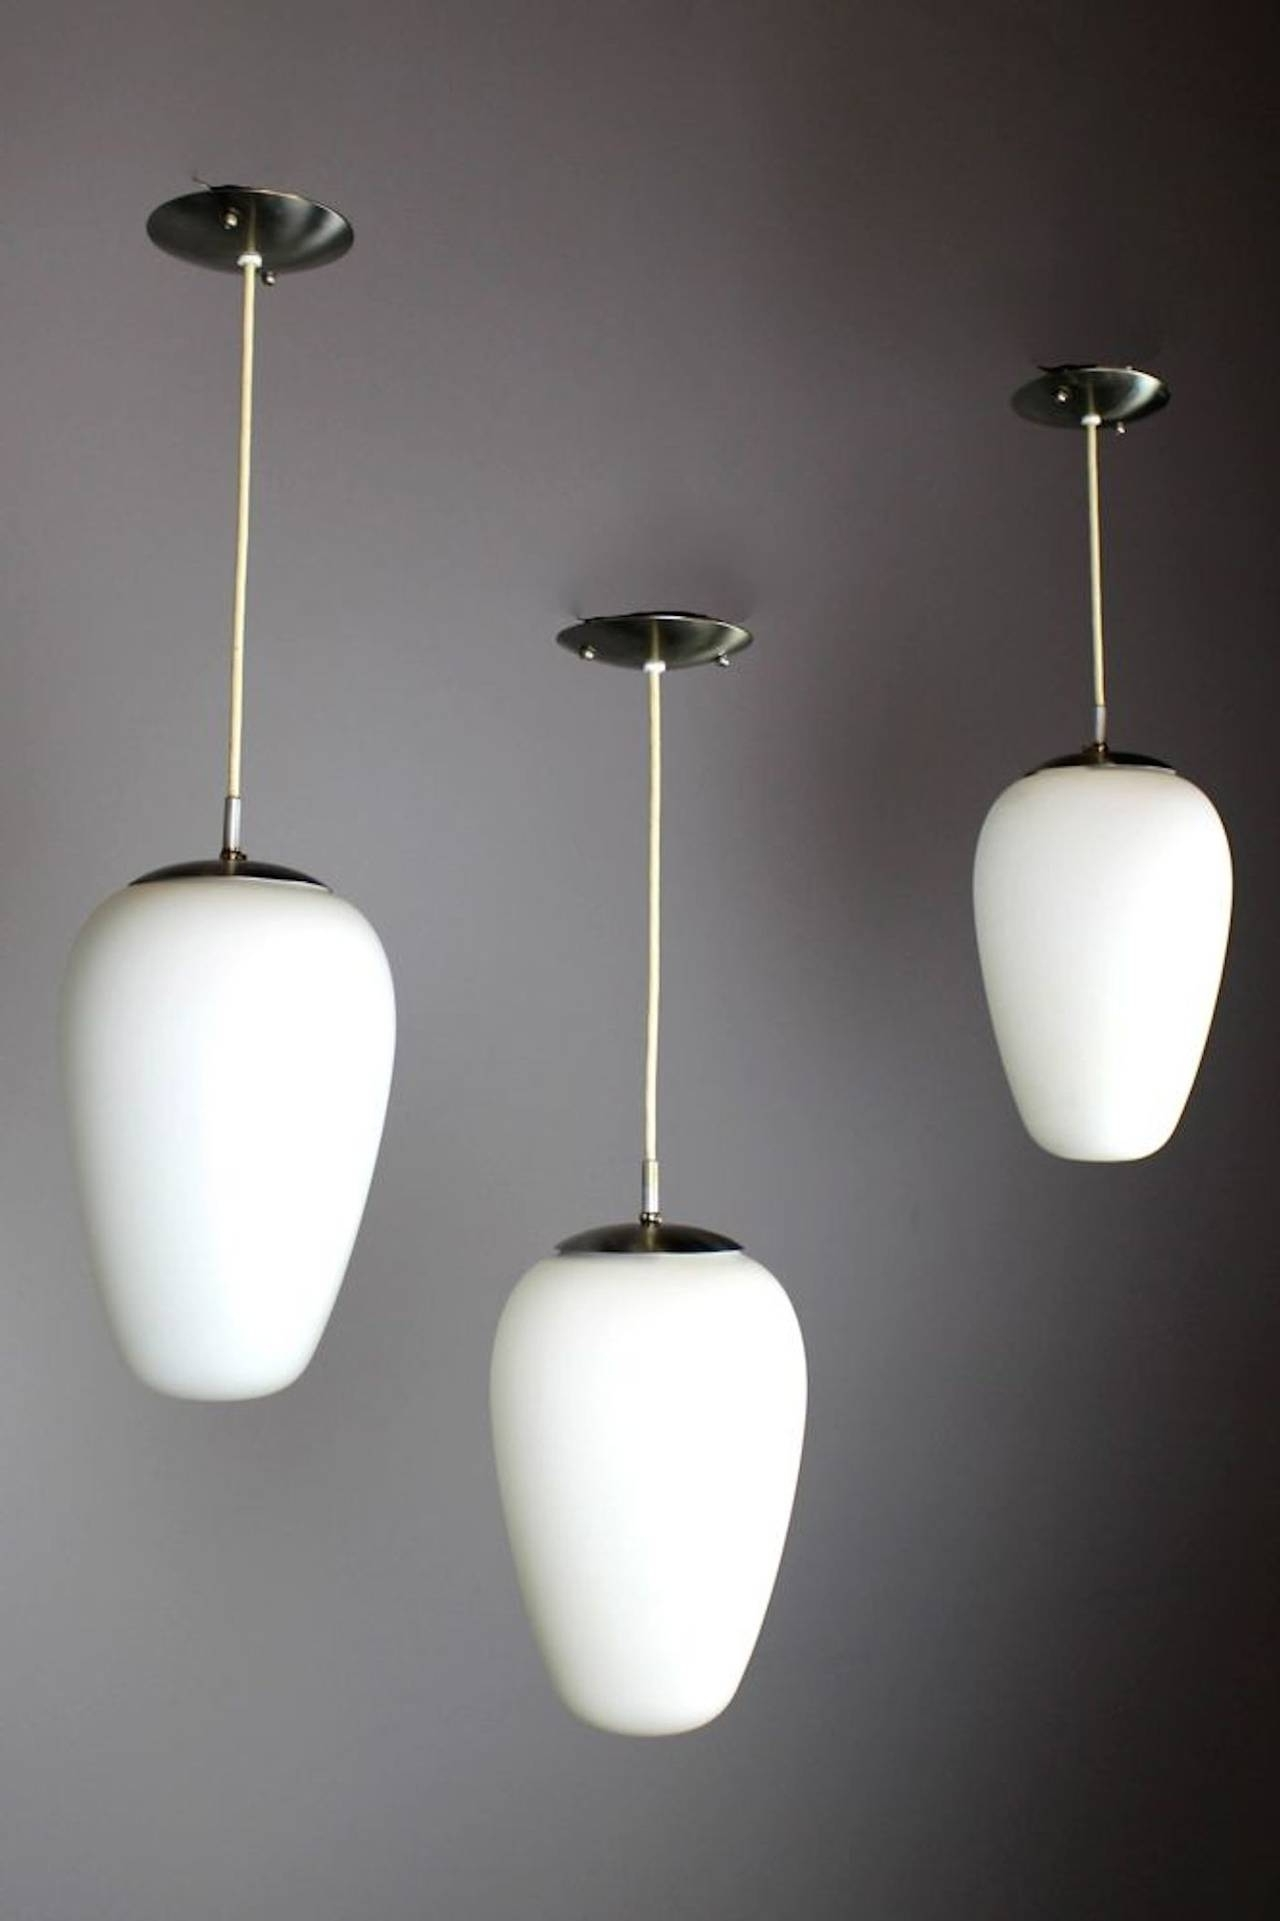 Plastic Outdoor Ceiling Lights Inside Widely Used Pendant Lighting Ideas (View 10 of 20)